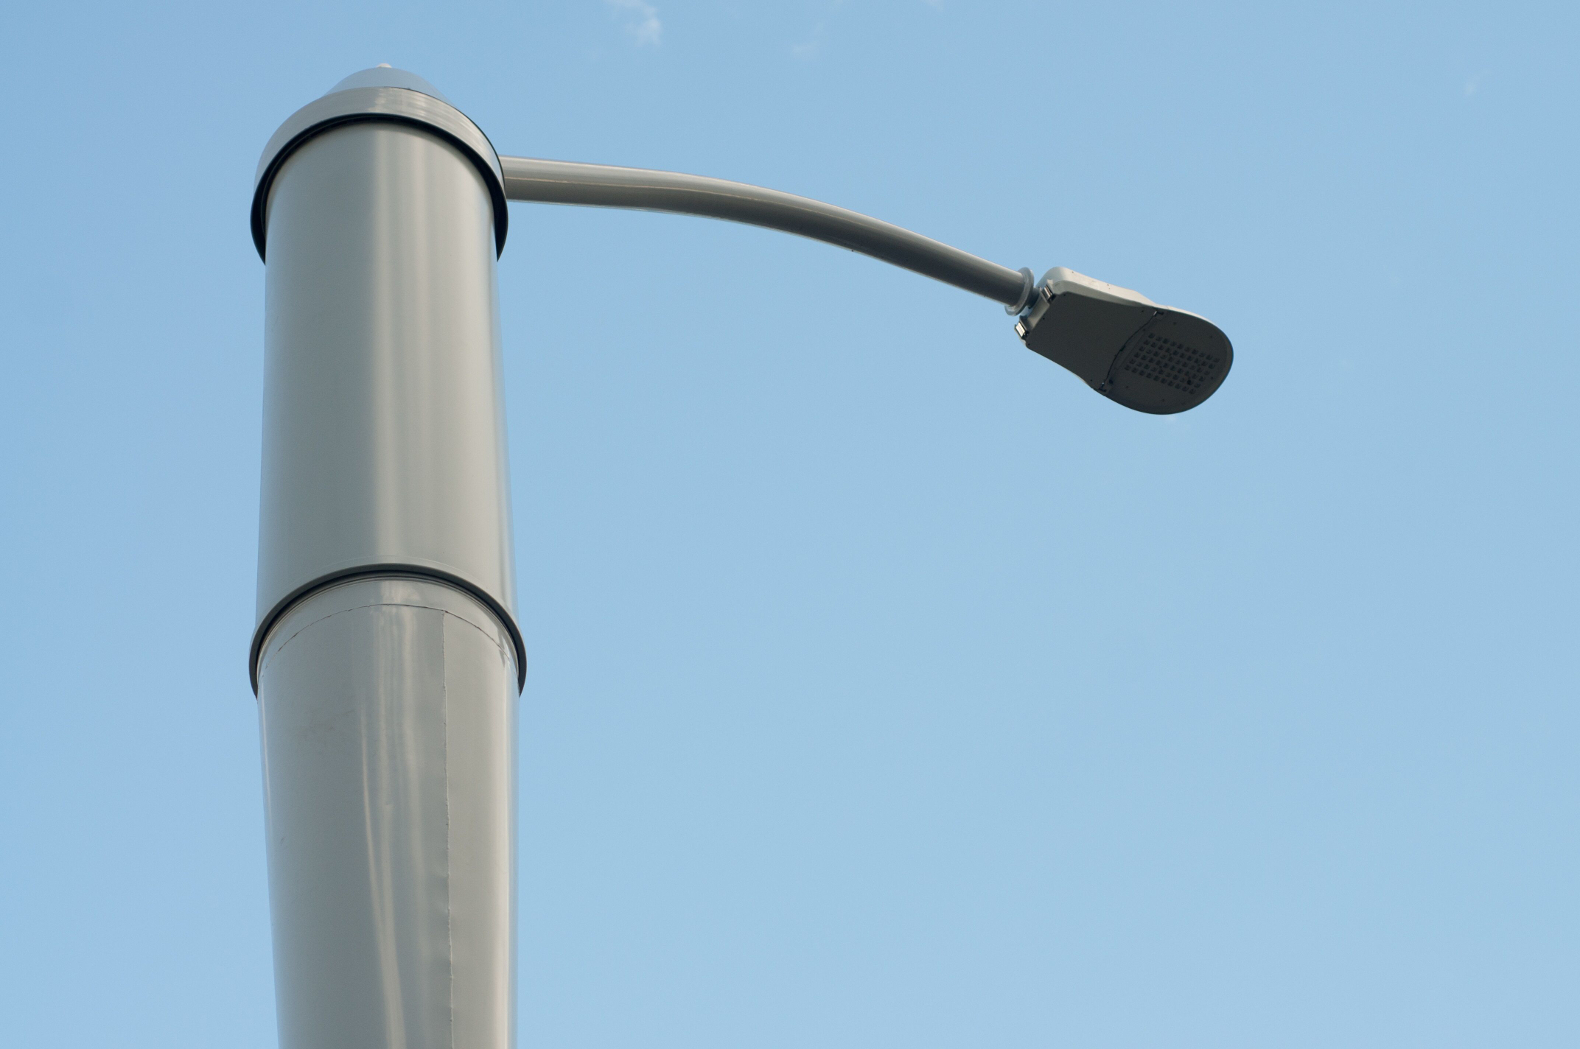 la-smartpole-street-lamps-by-philips-and-4g-lte-by-ericsson